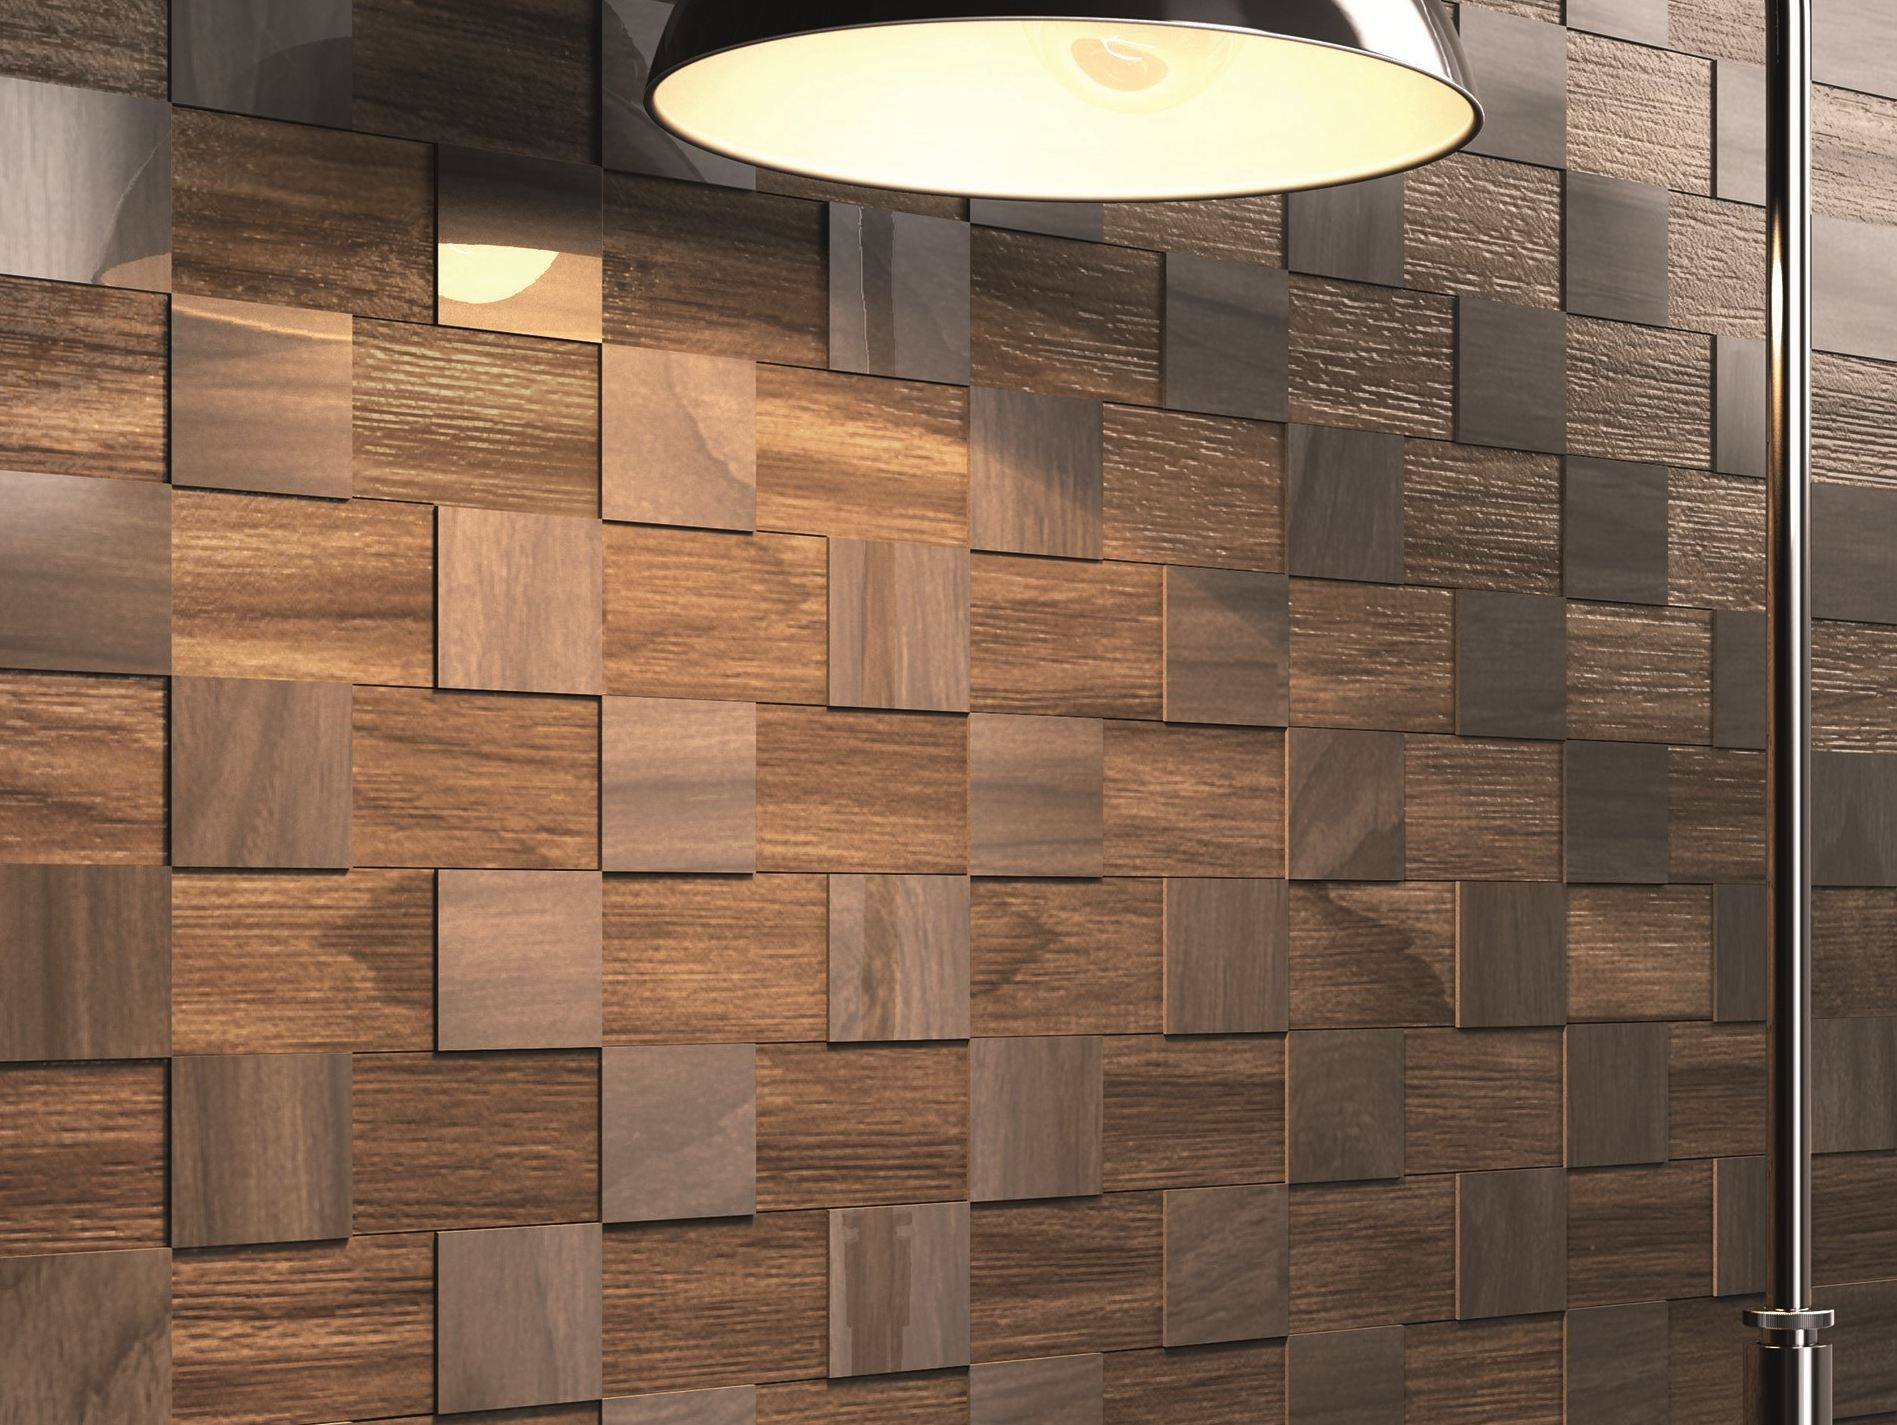 Artwork of wood wall covering ideas creative corner for Interior designer 7